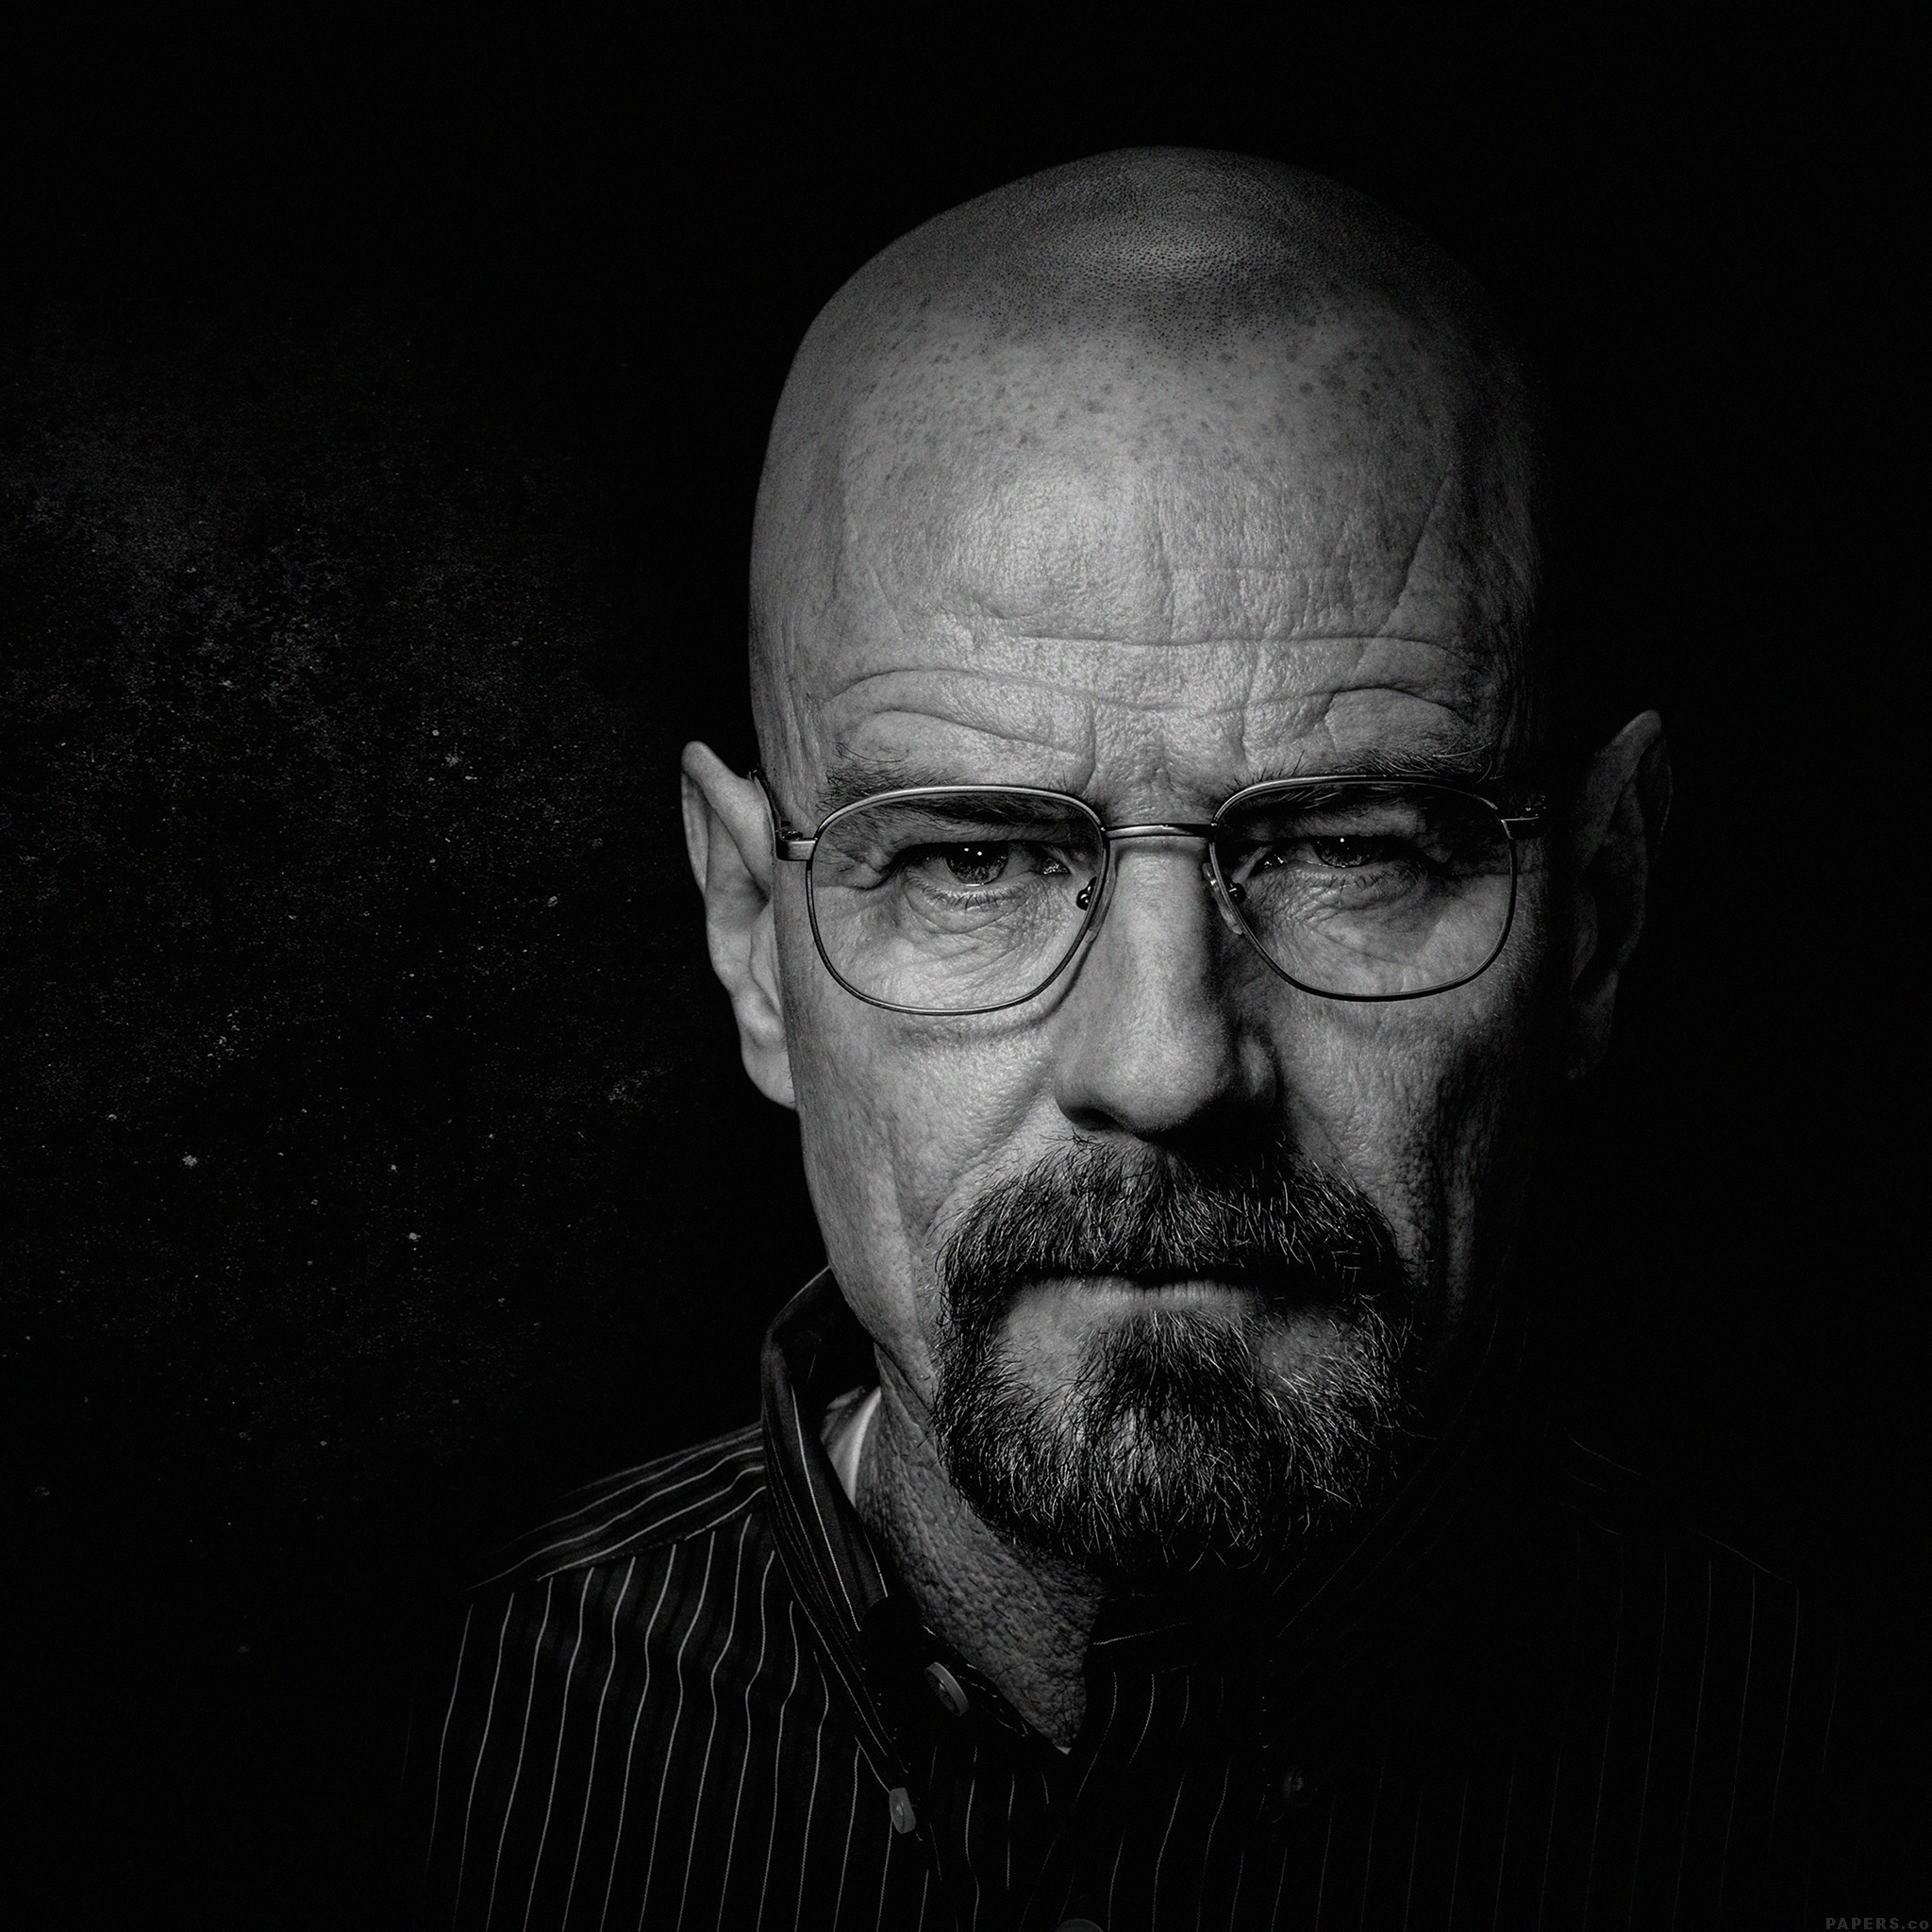 | he14-breaking-bad-face-film-art-dark